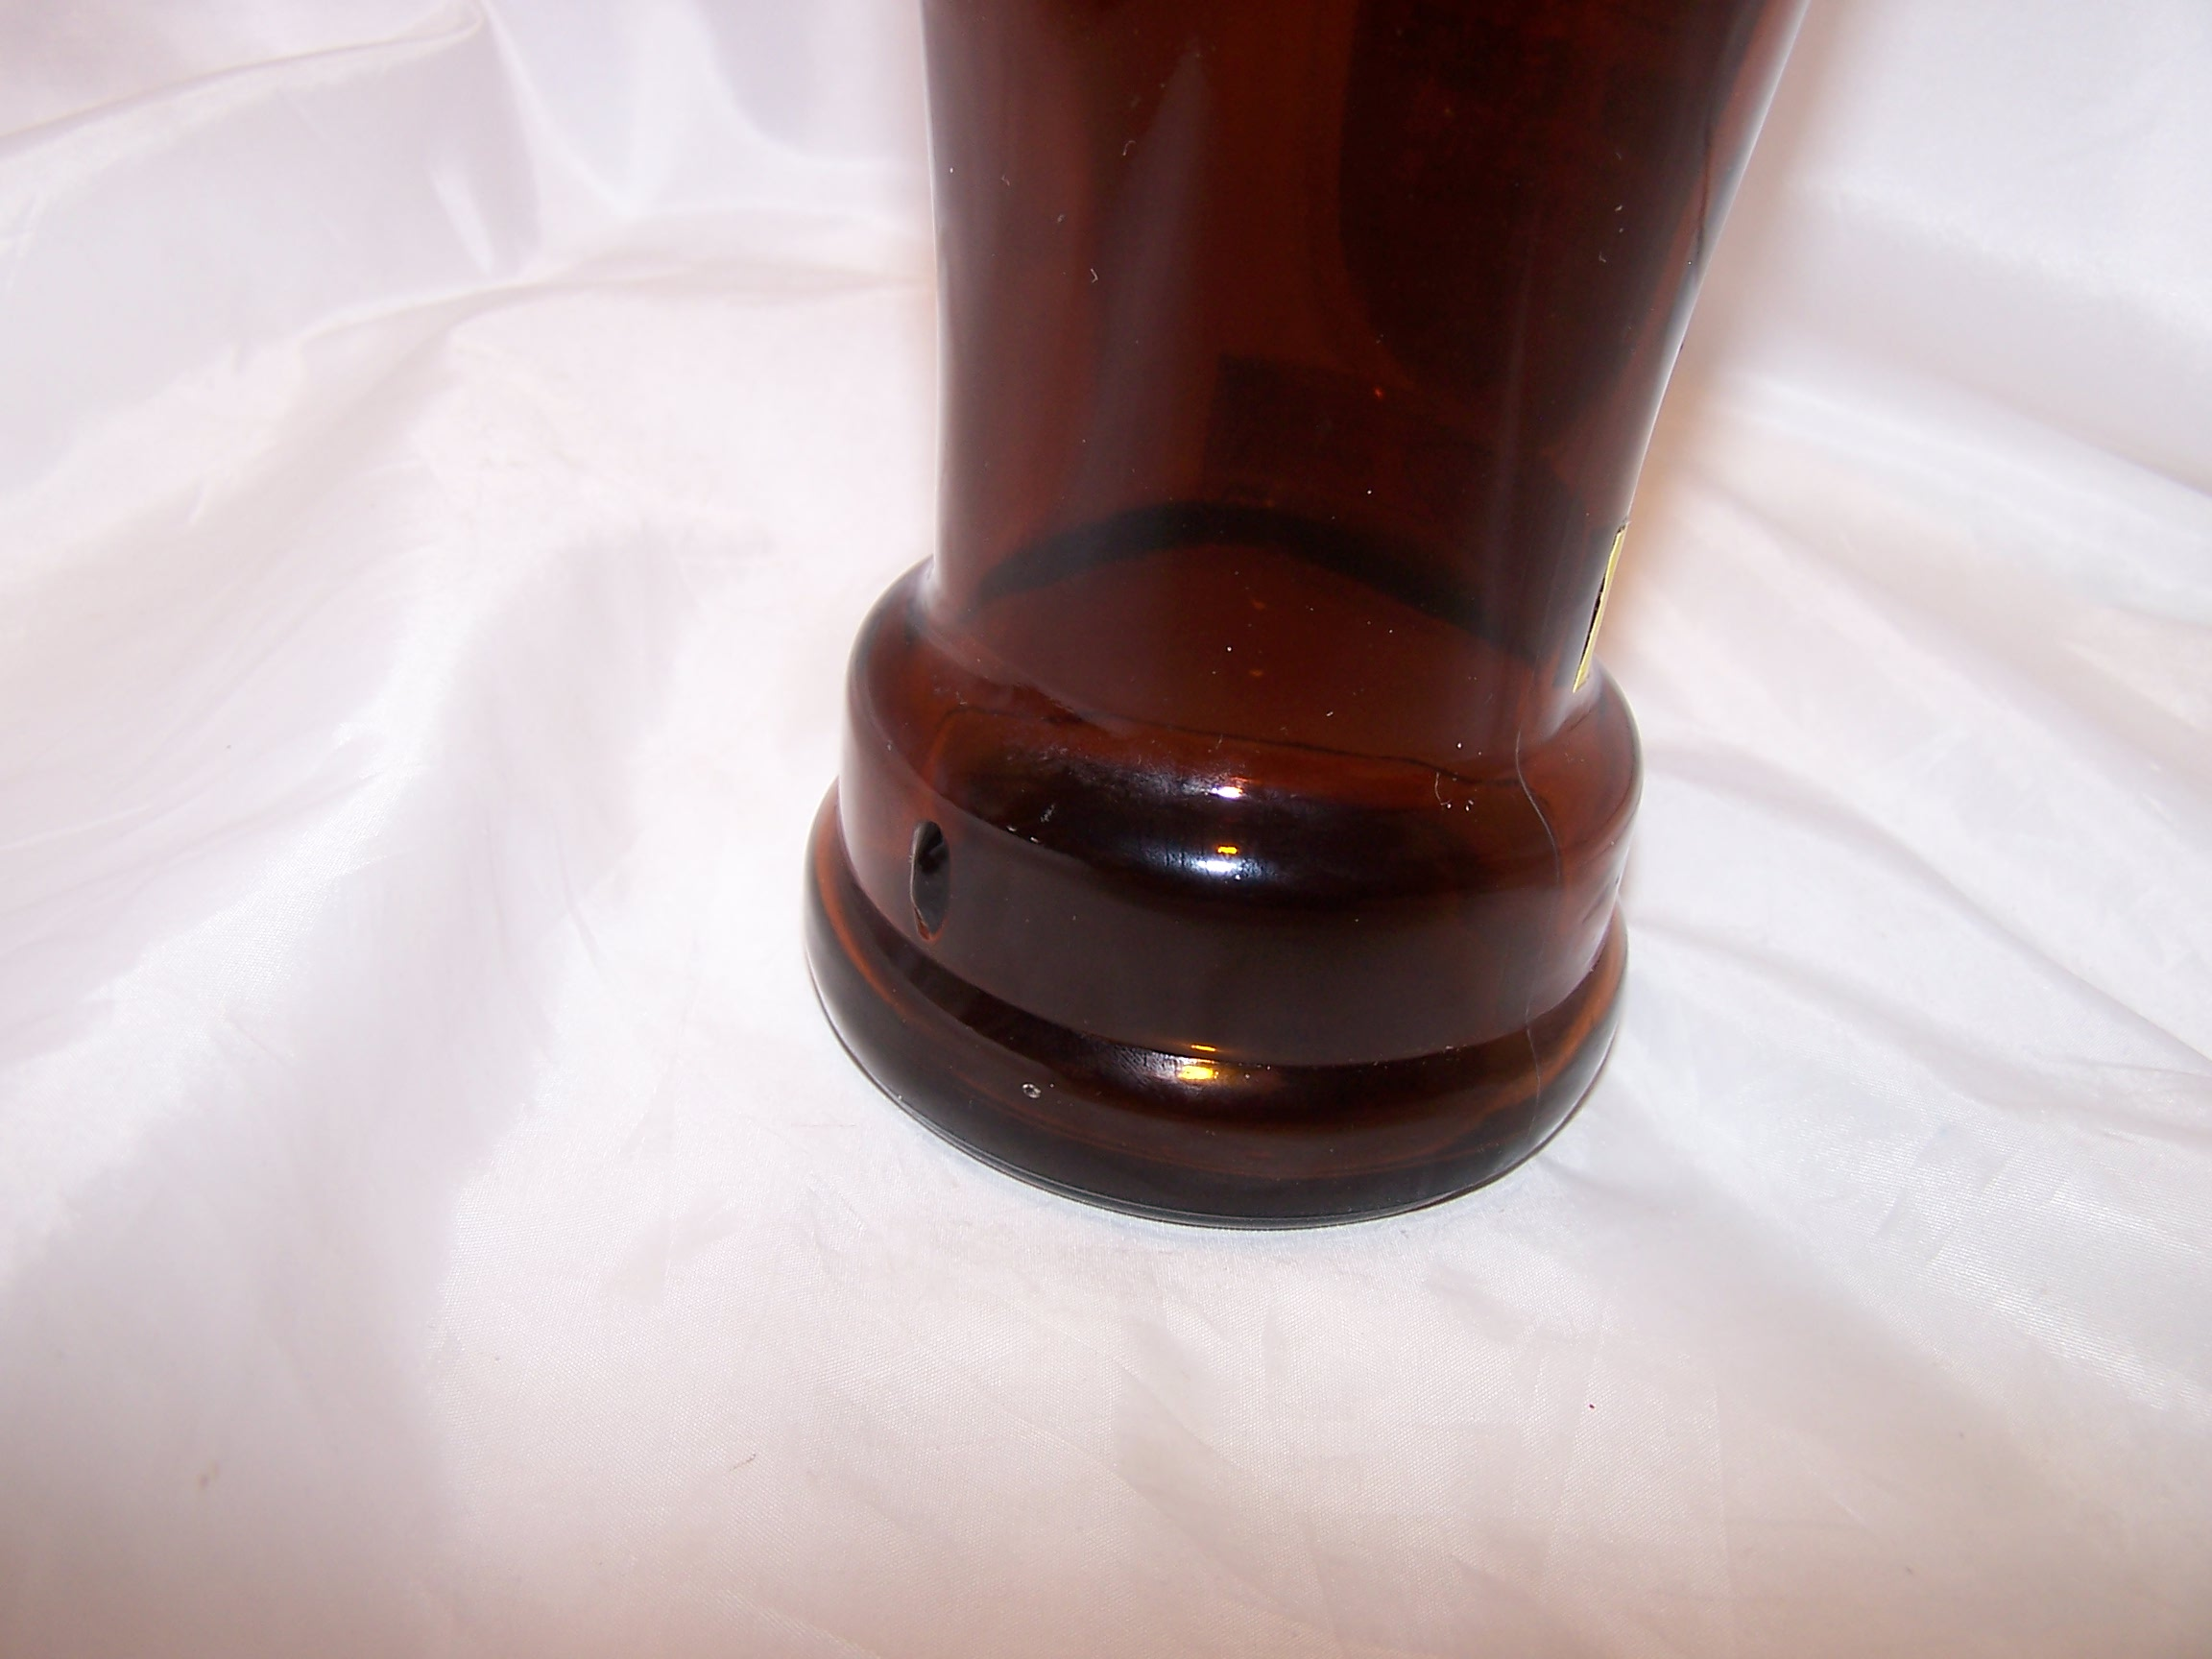 Image 4 of Don Pancho Licor de Cafe Brown Bottle, Mexico, Large, Empty